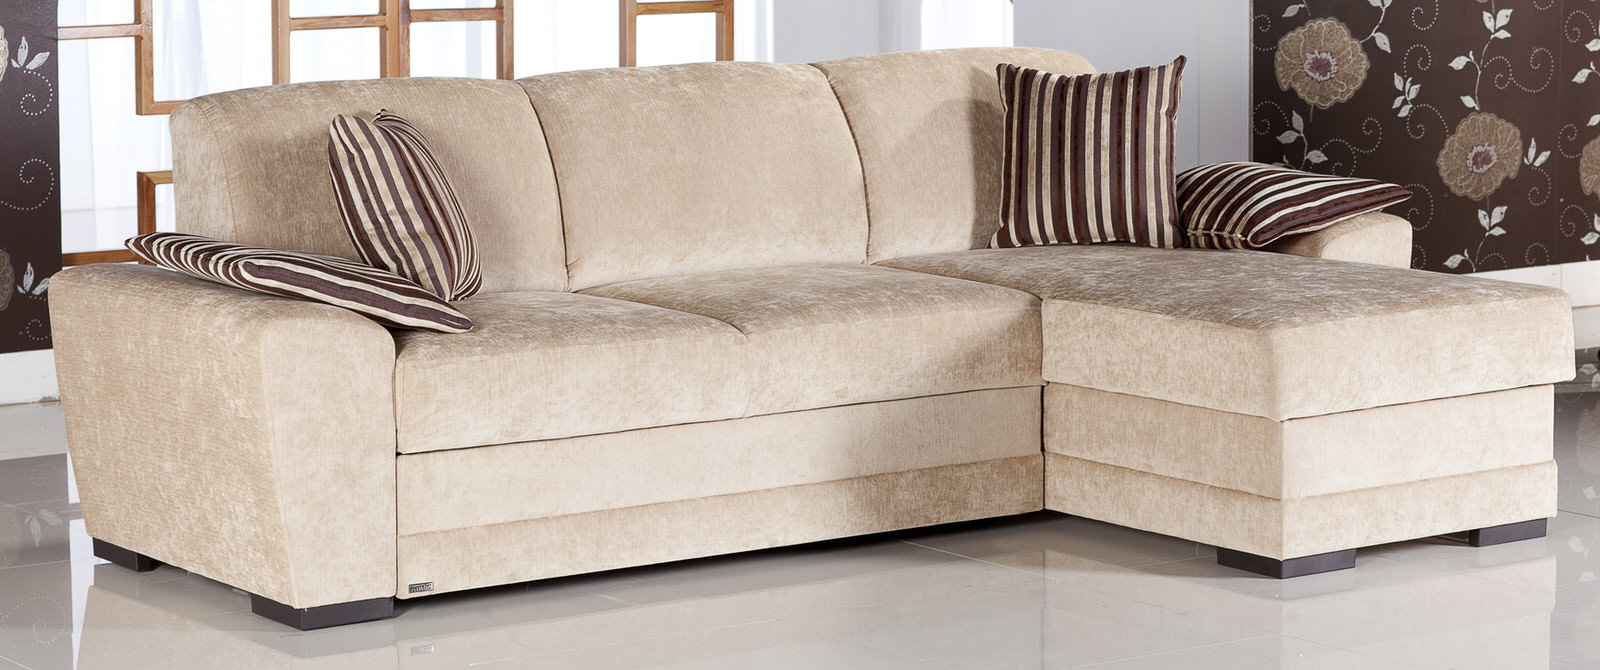 piece gens trim dynasty sofa cream height in threshold fabric width albany item sectional products